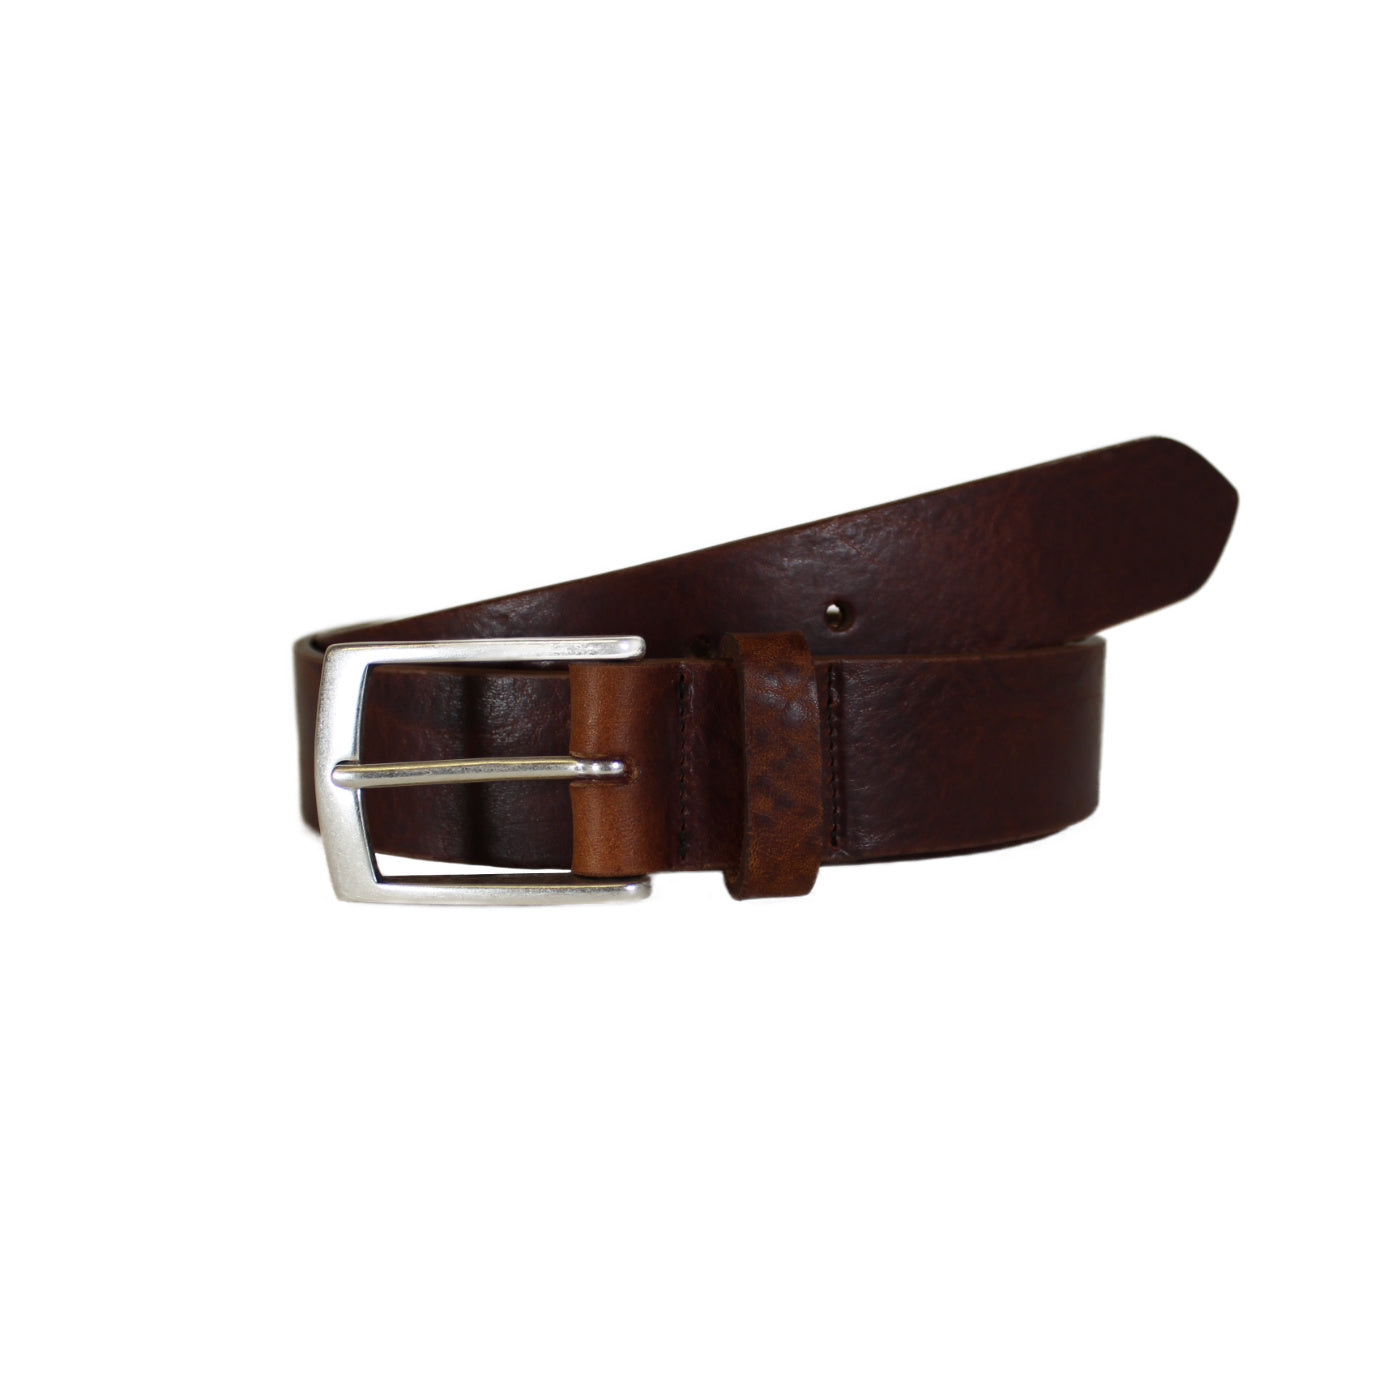 "Brown Rugged Vegetable Tanned Leather Belt (Width 35 mm - 1 ½"")"